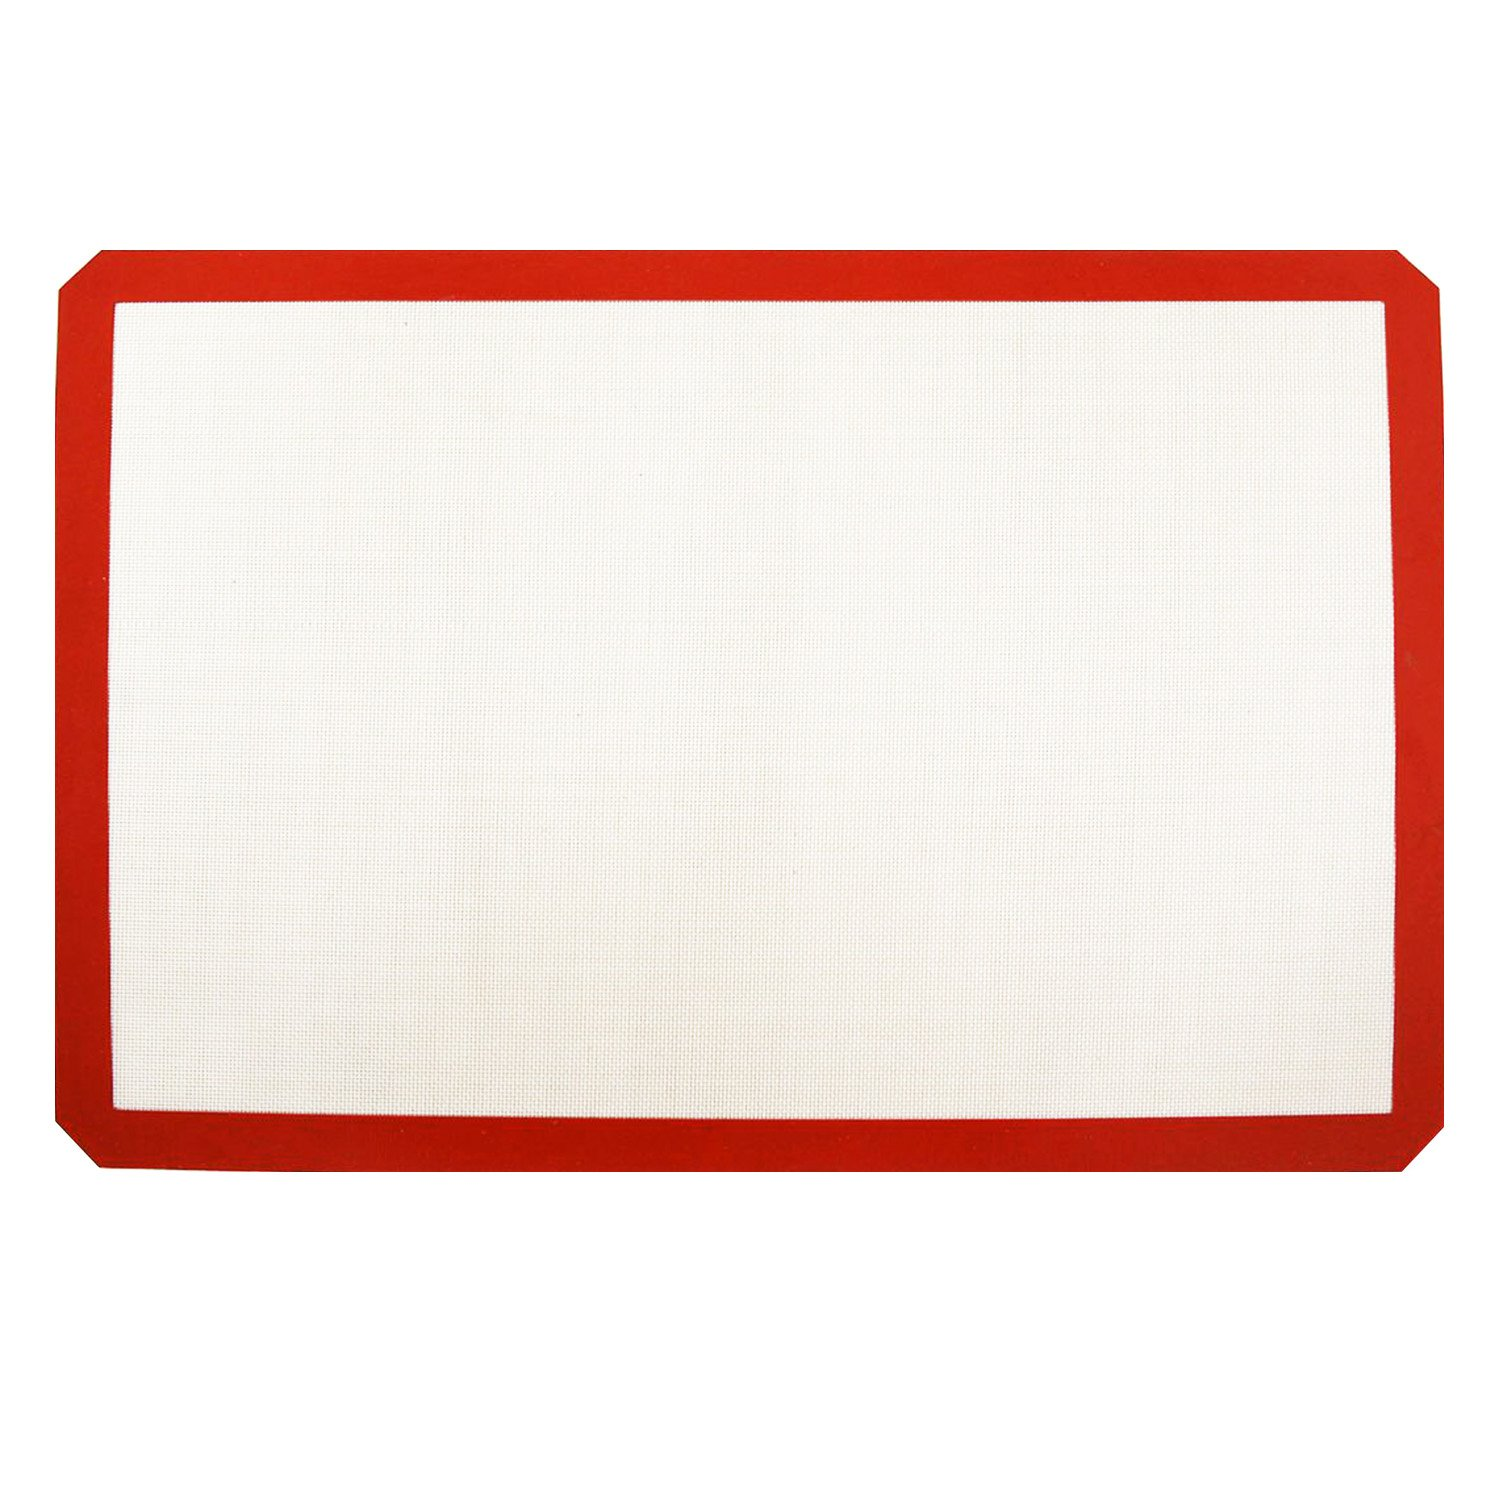 New Star Foodservice 36602 Commercial Grade Silicone Baking Mat Non-Stick Pan Liner, 17 x 25 inch (Full Size) Pack of 12